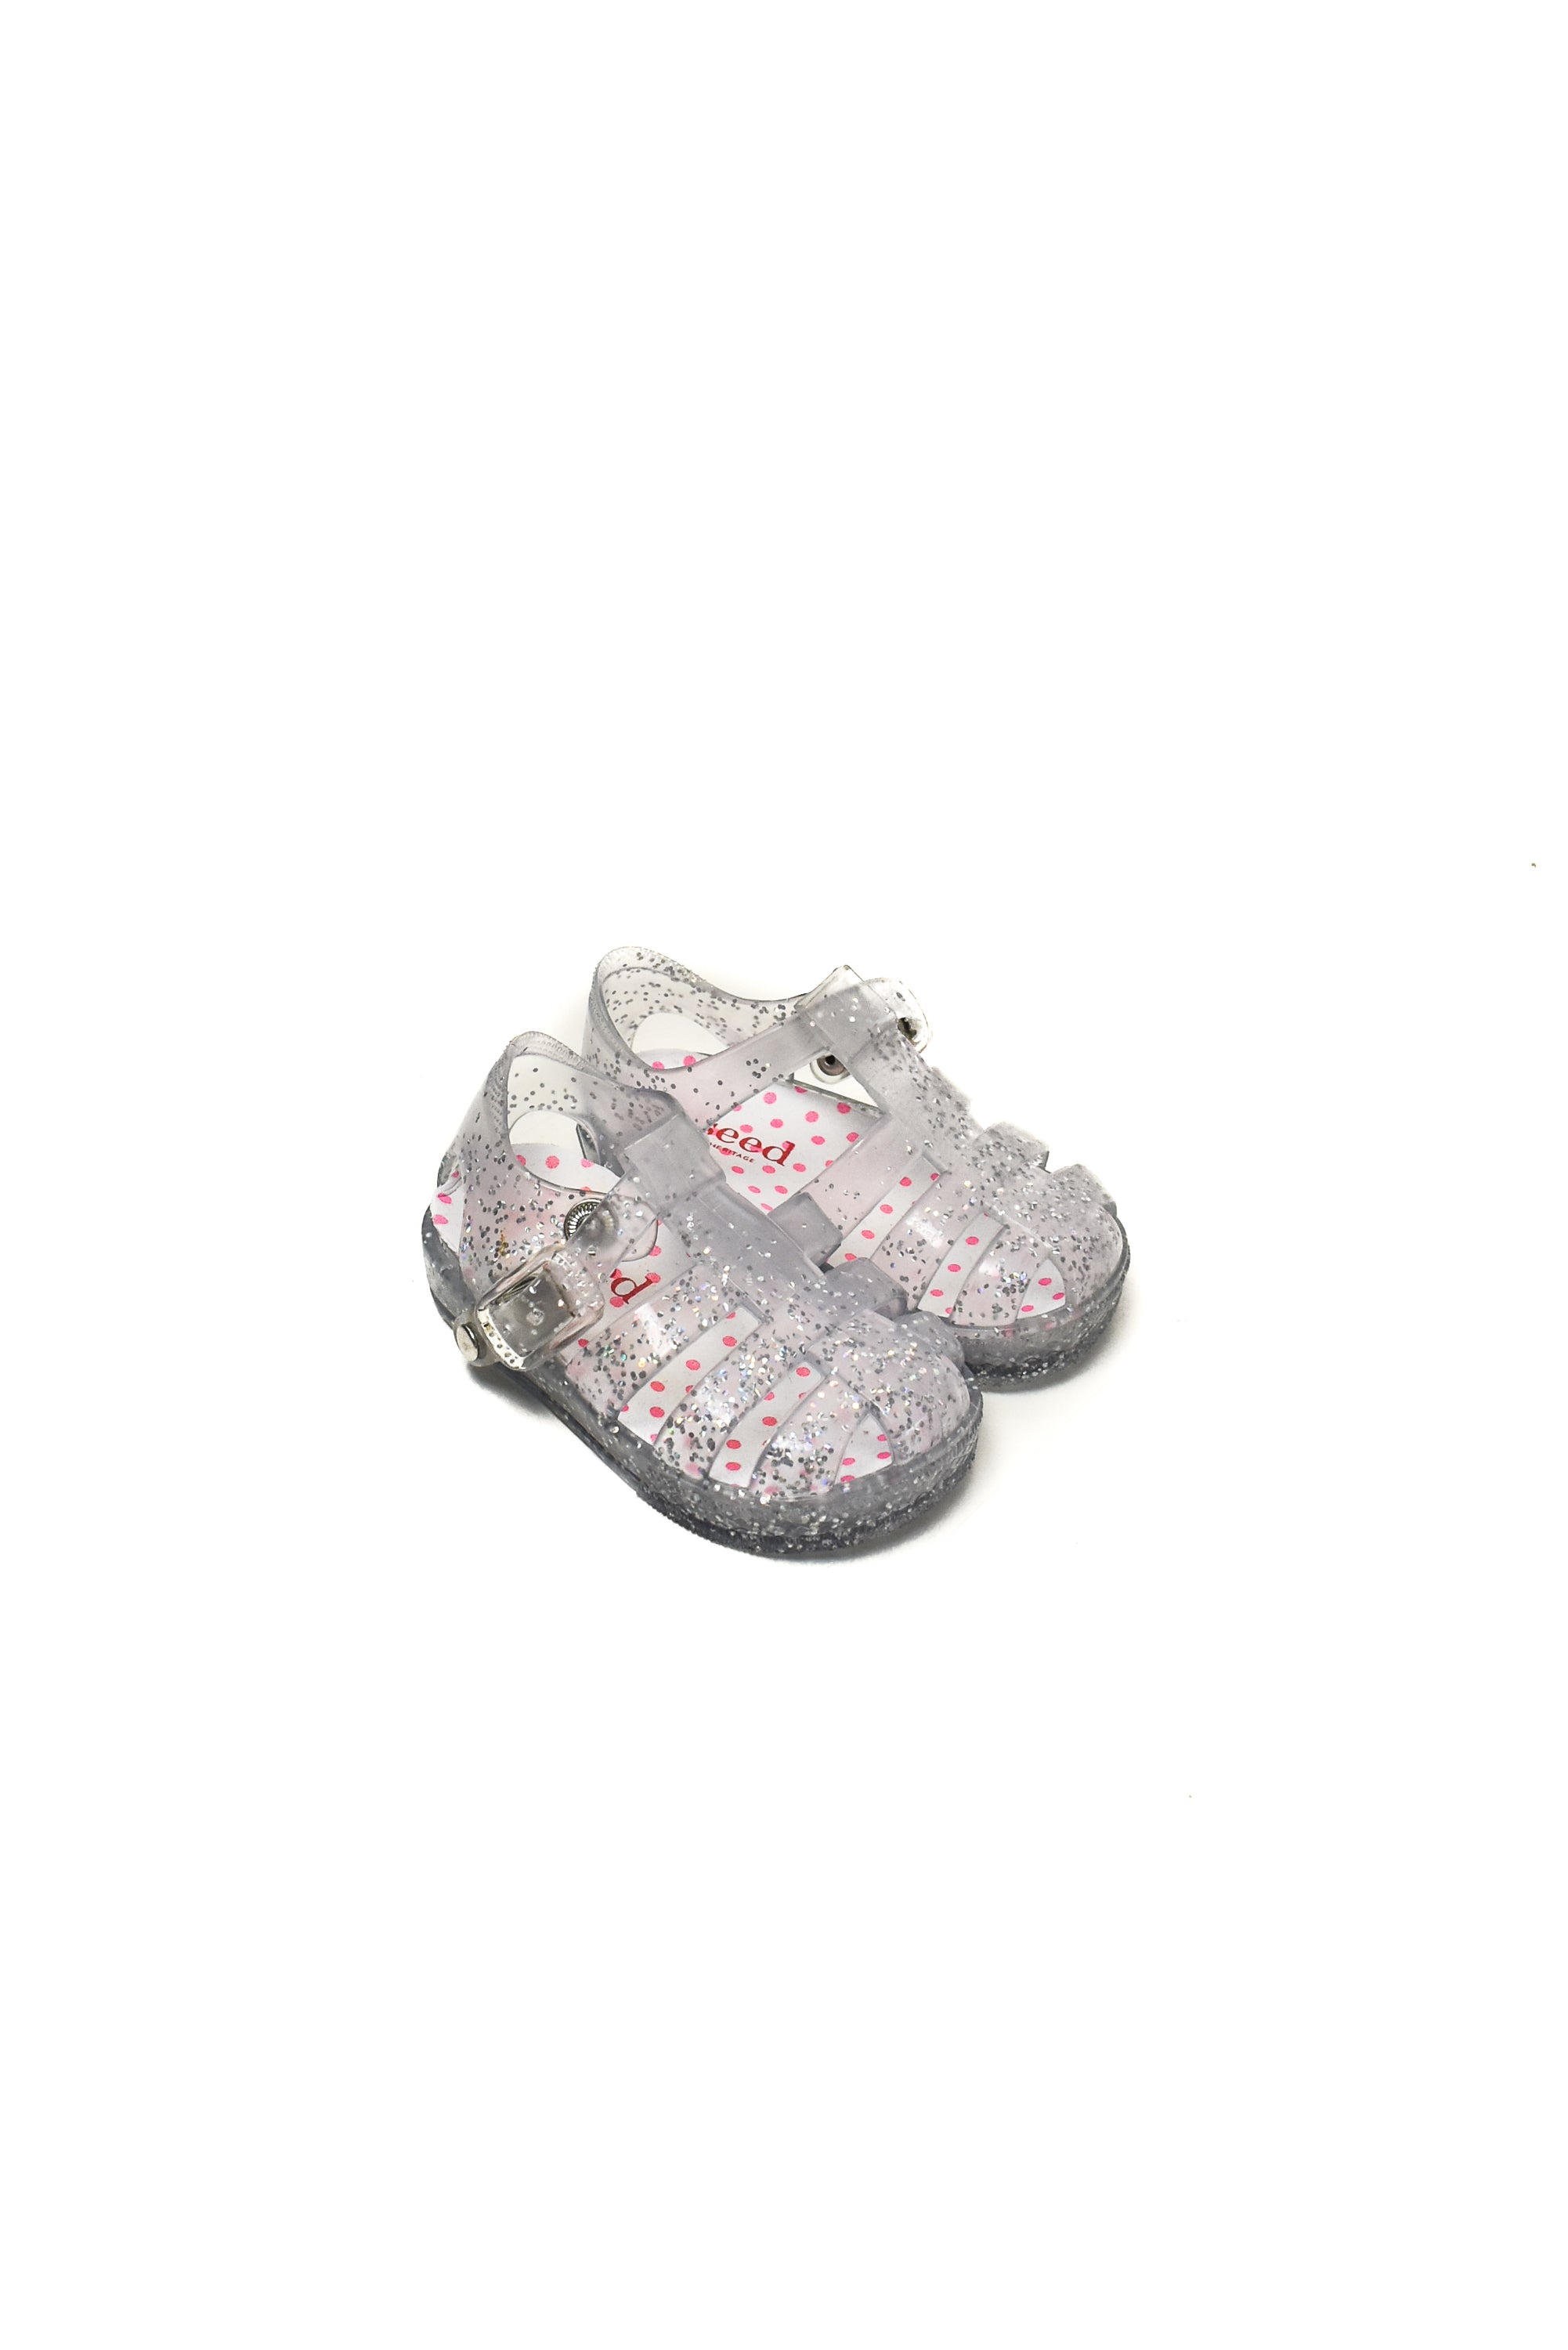 10006347 Seed Baby~Sandals 0-3M at Retykle